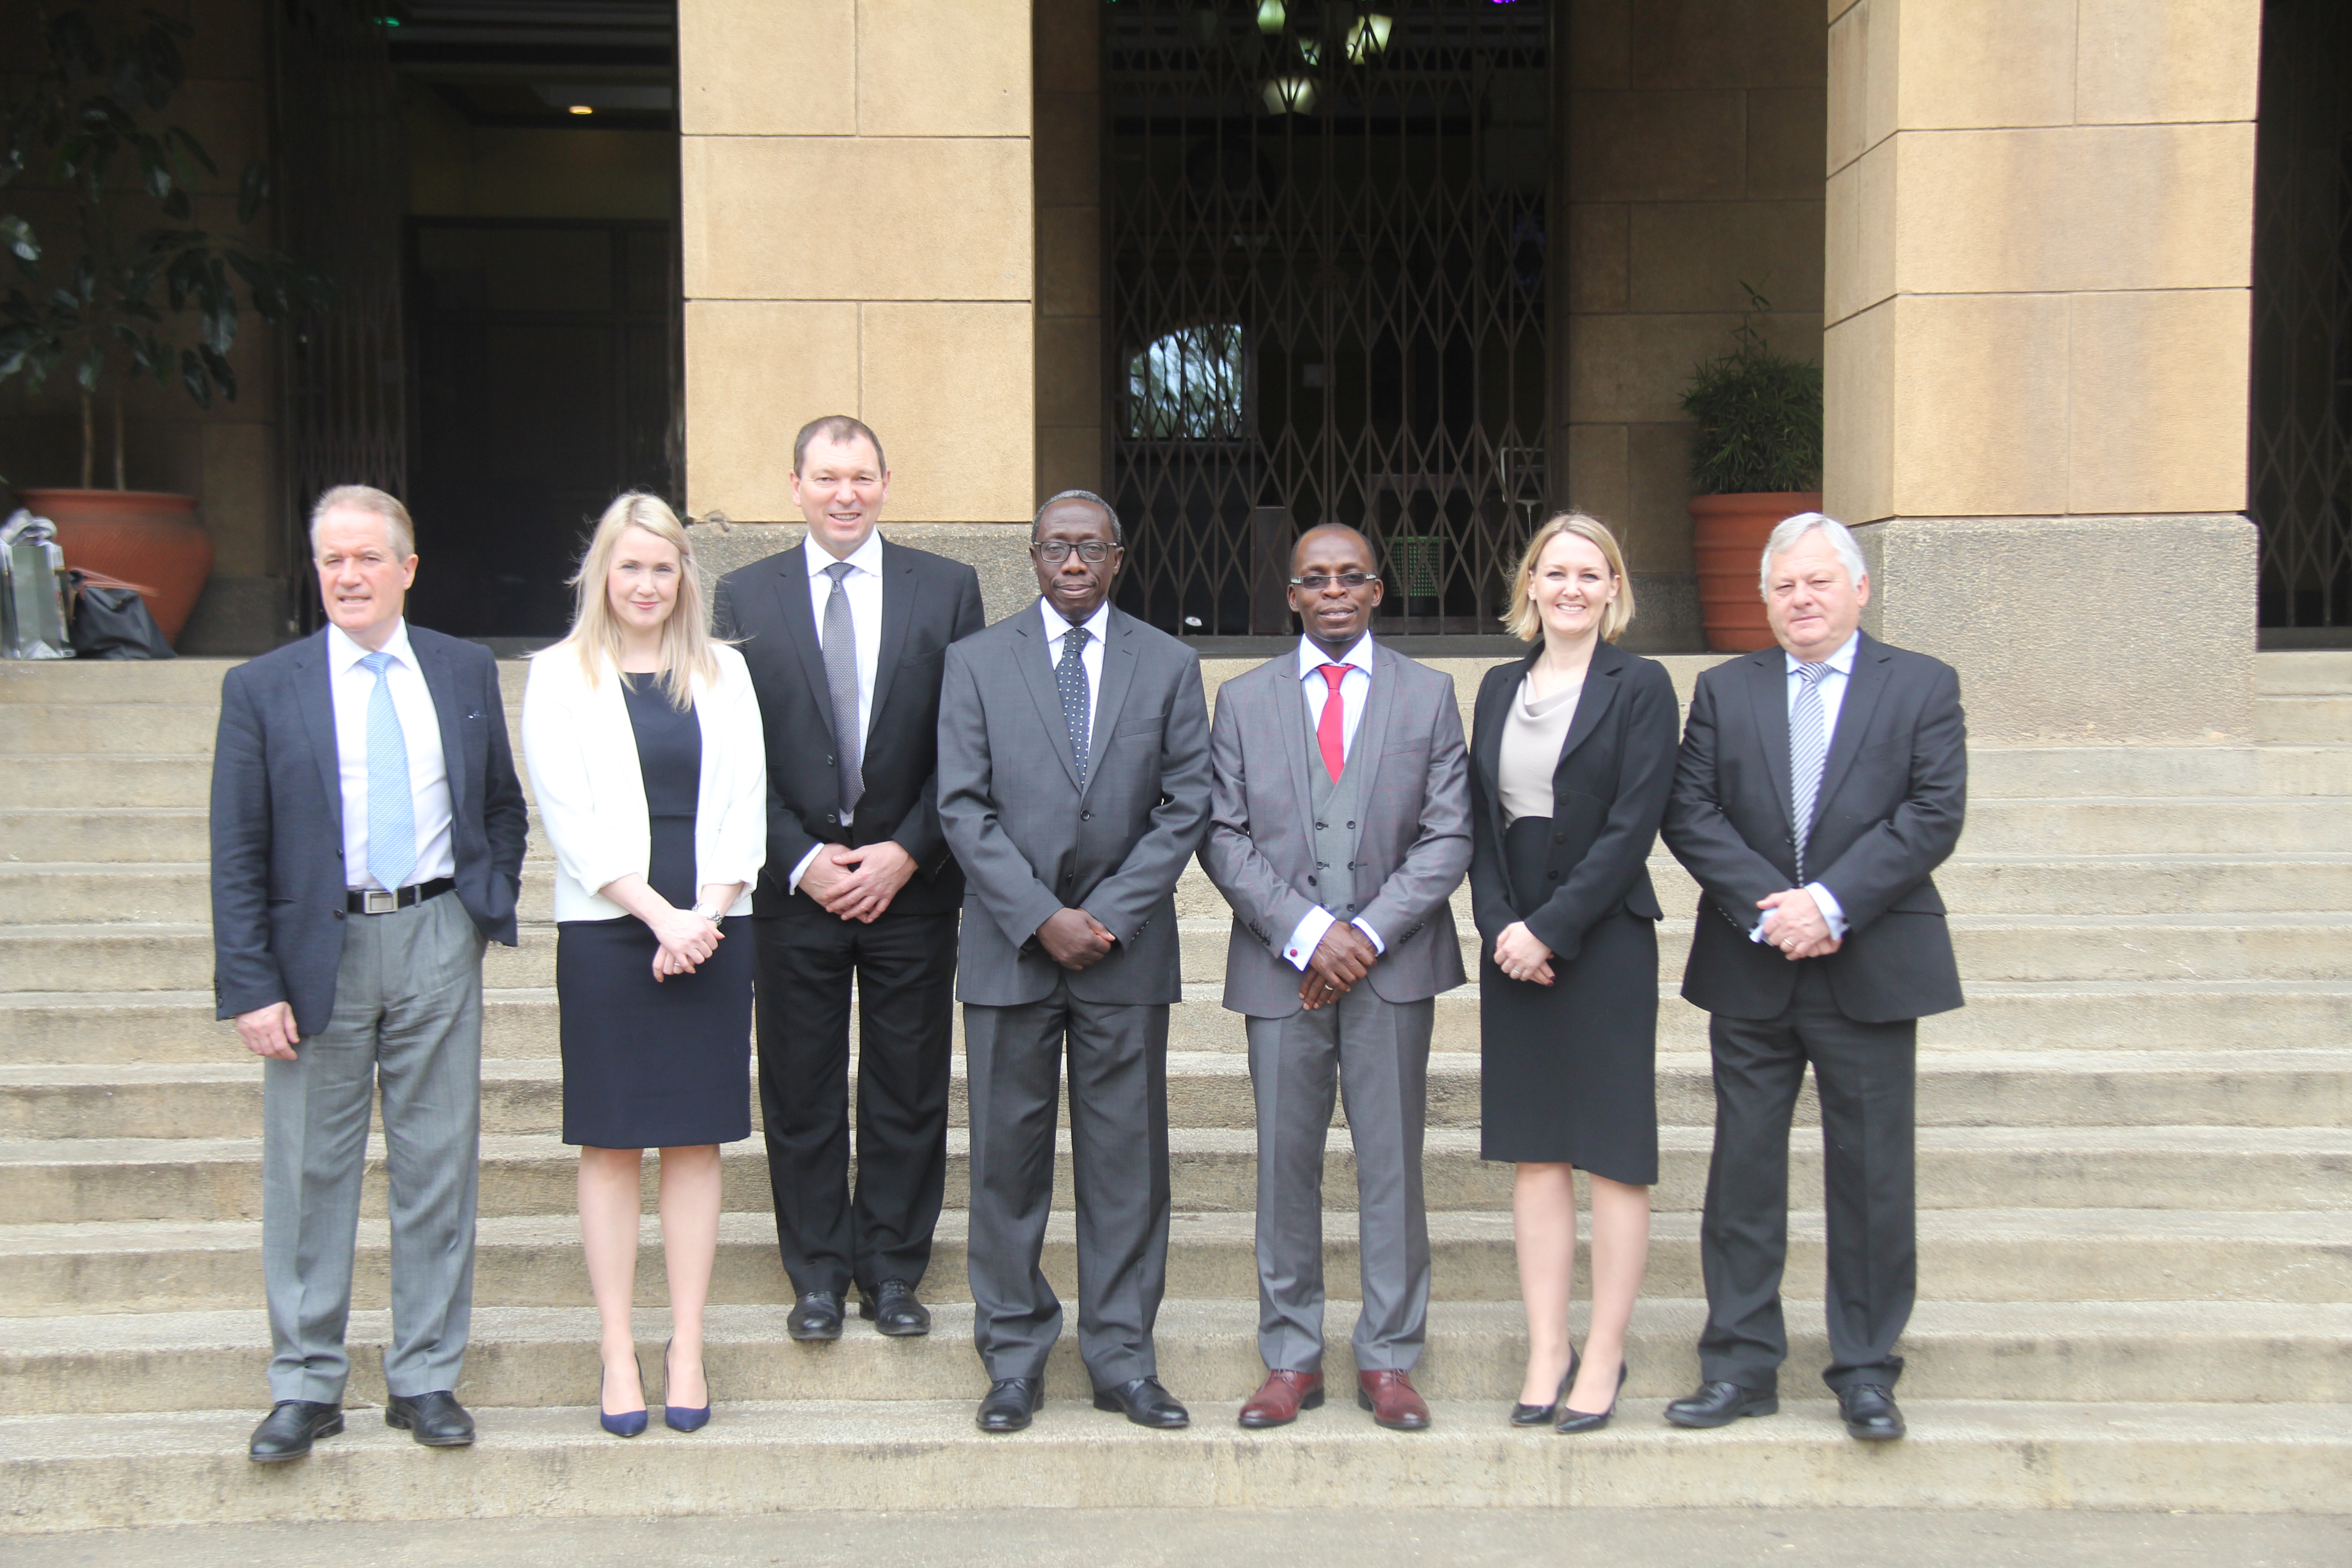 Court of Appeal President, Justice William Ouko (4th L) is joined by visiting solicitors from Hugh James firm in the UK, they paid a courtesy call on the Court.